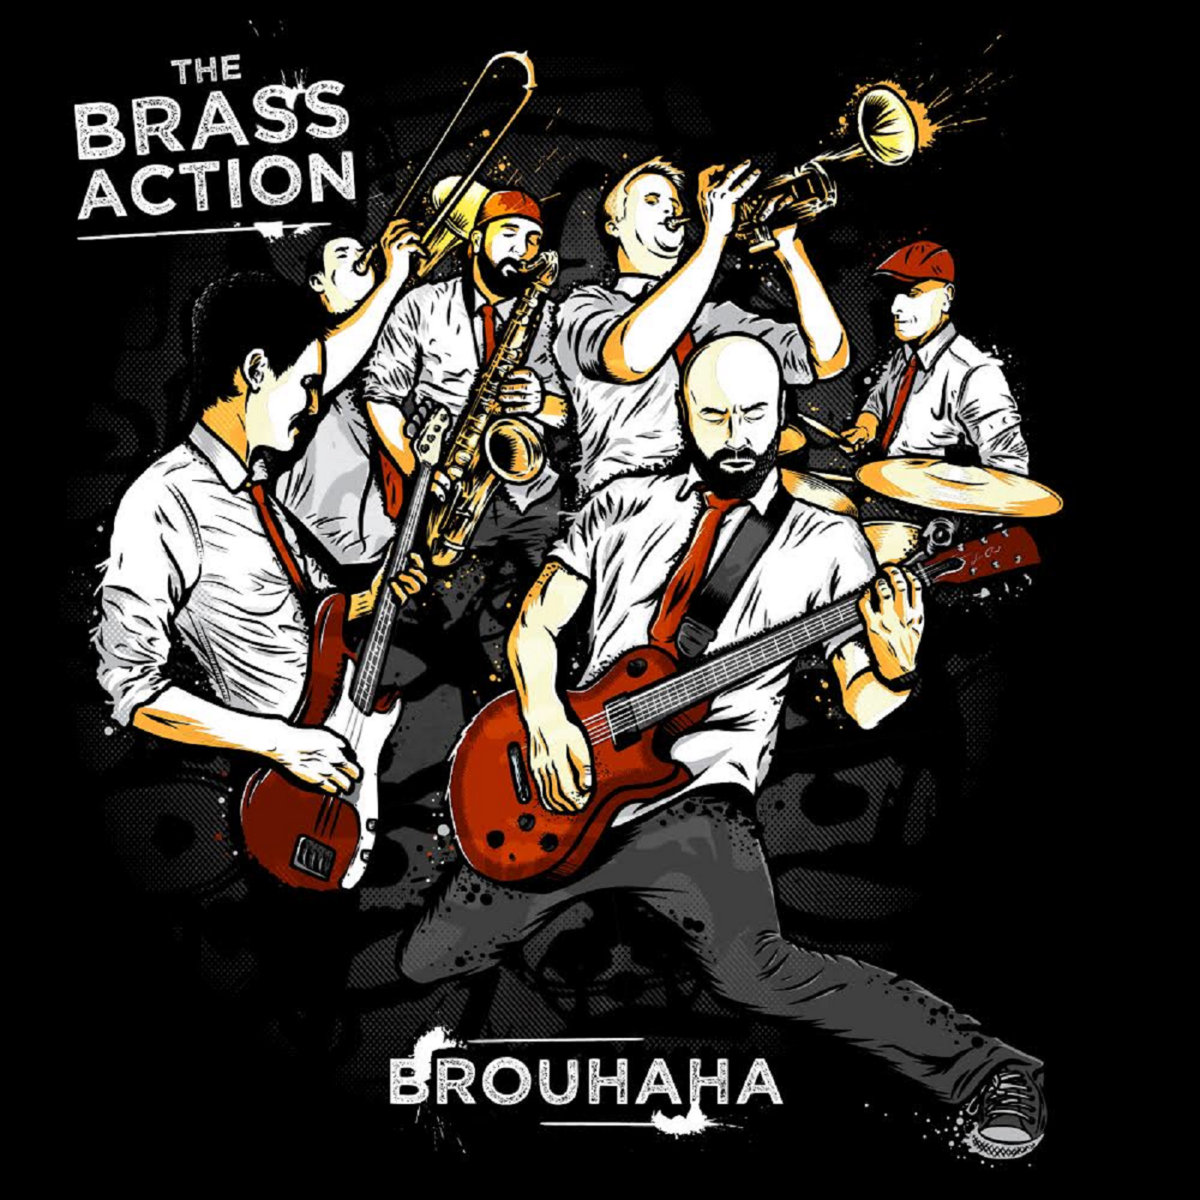 Brouhaha (LP) | The Brass Action